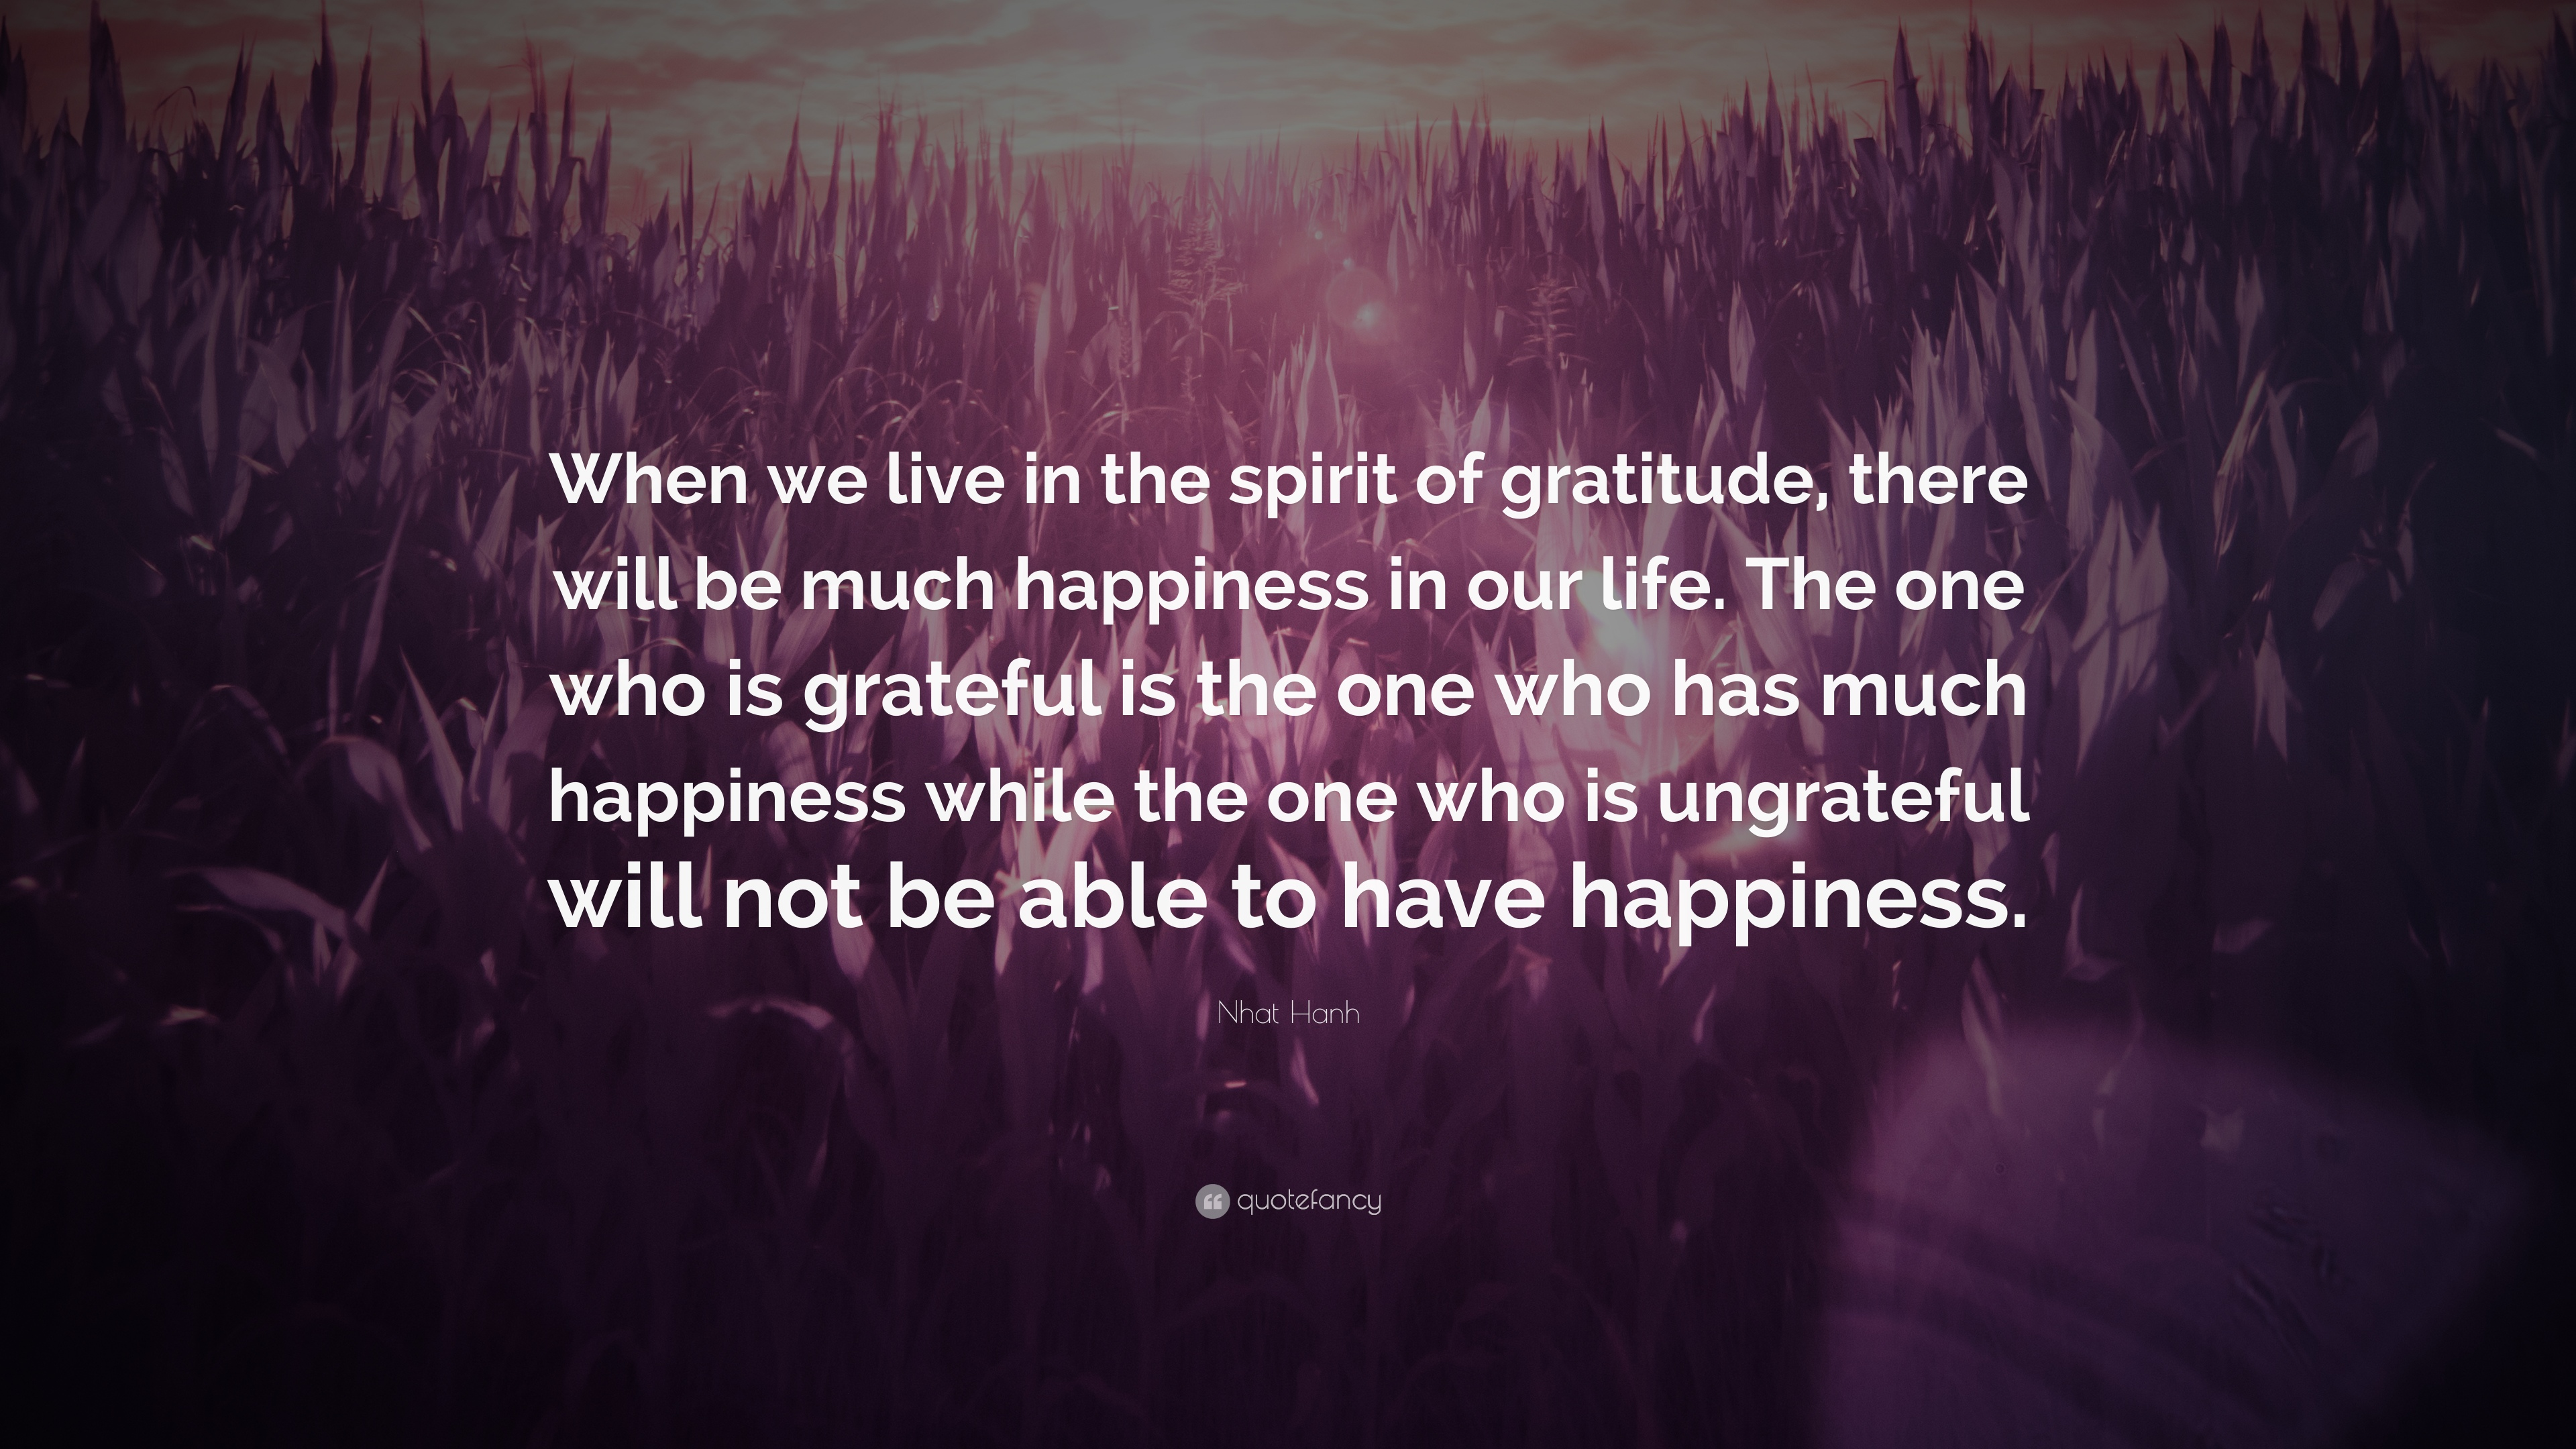 Nice Nhat Hanh Quote: U201cWhen We Live In The Spirit Of Gratitude, There Will